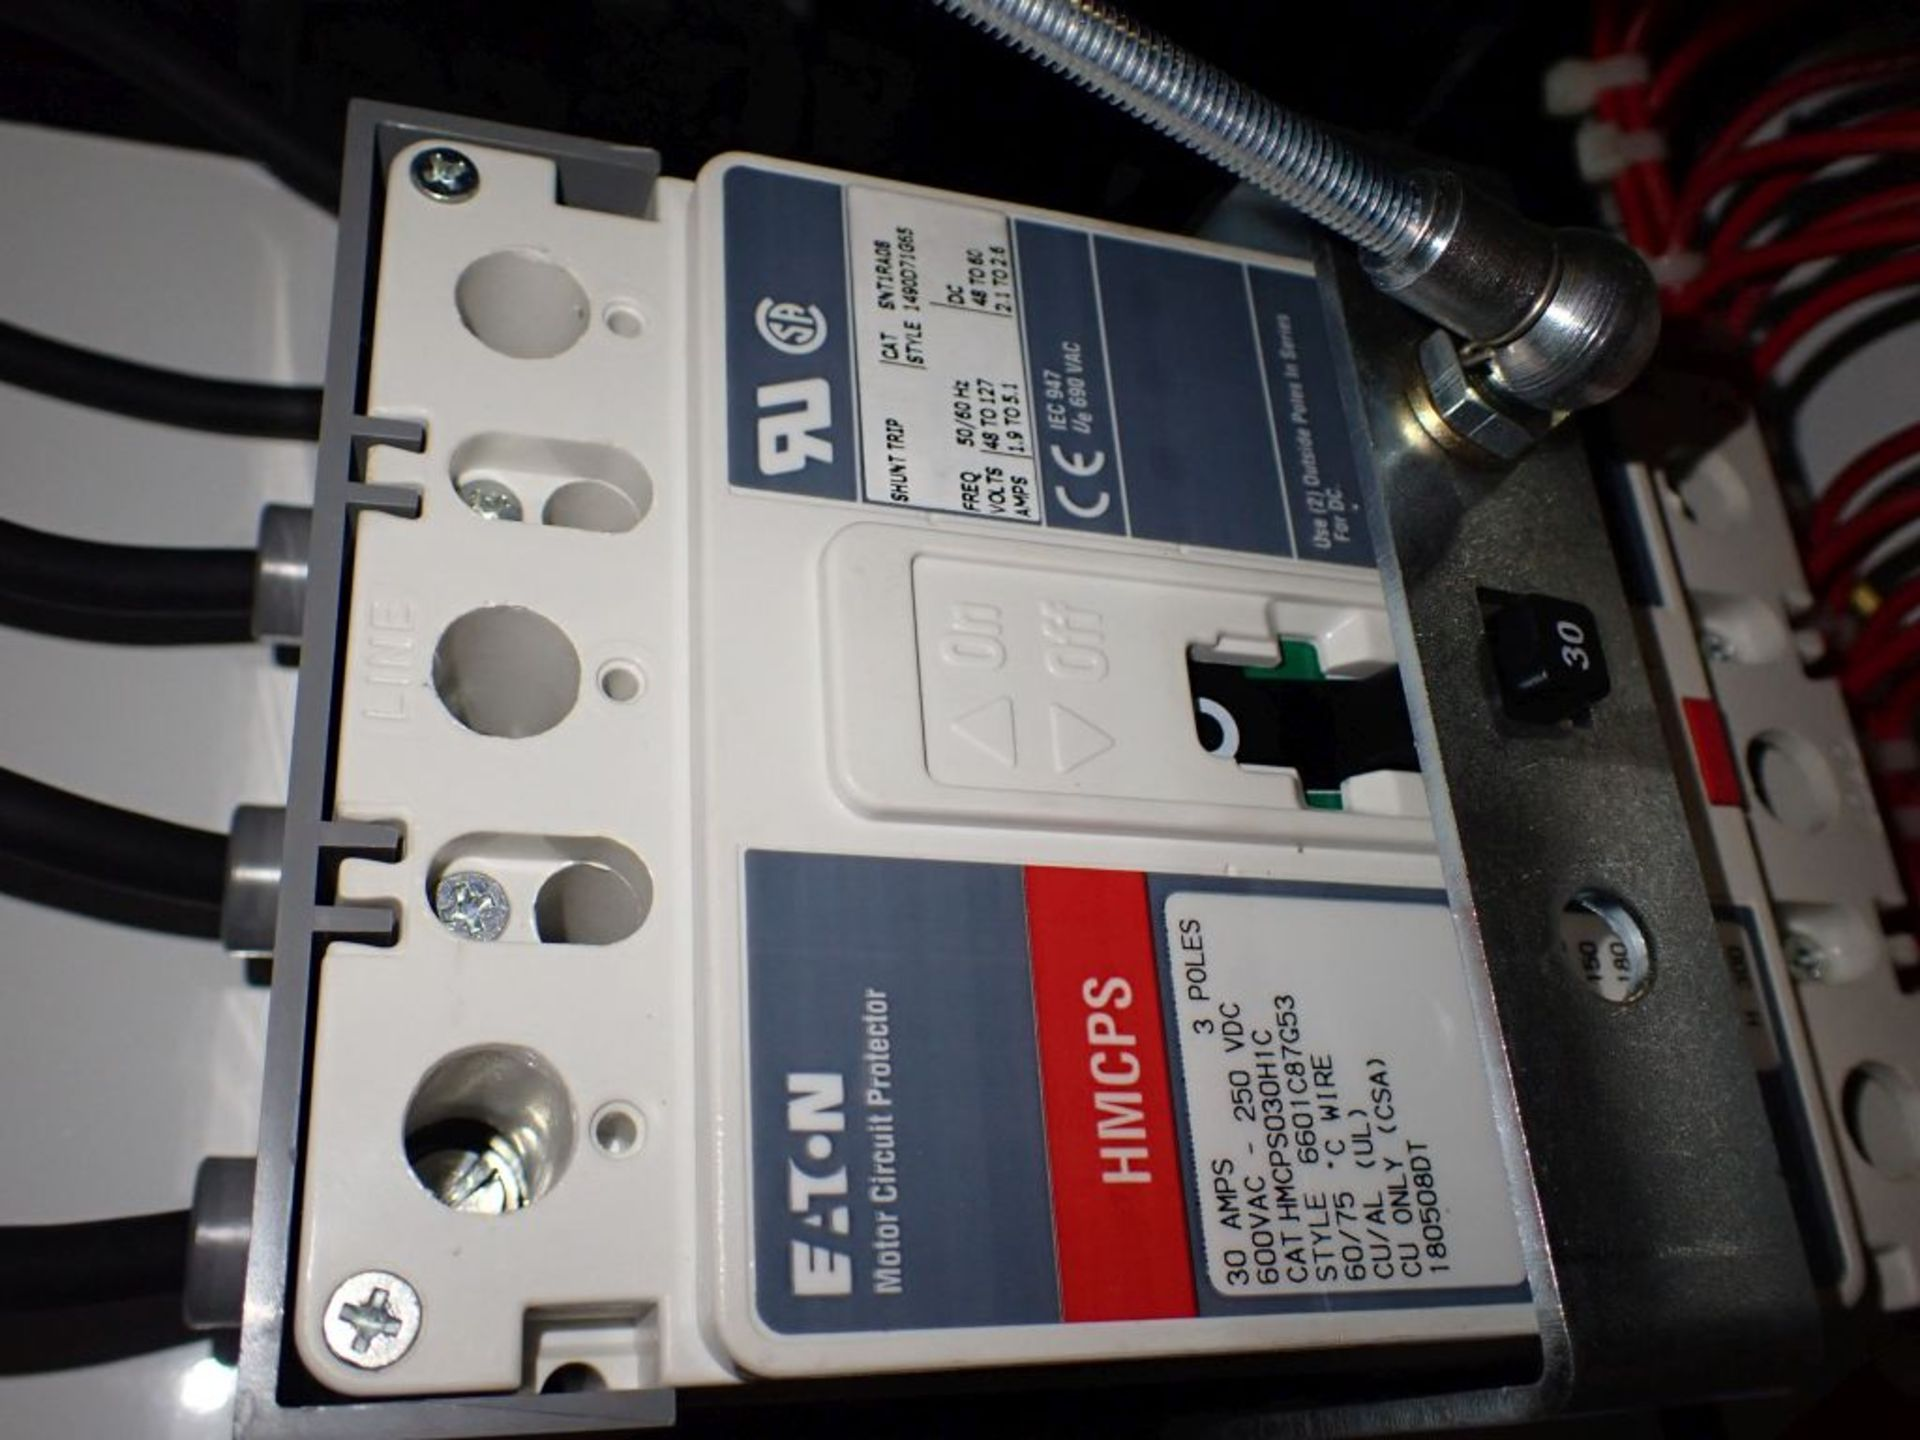 Eaton Freedom 2100 Series Motor Control Center | (11) F206-30A-10HP; (5) F206-15A-10HP; (1) SVX900- - Image 12 of 102